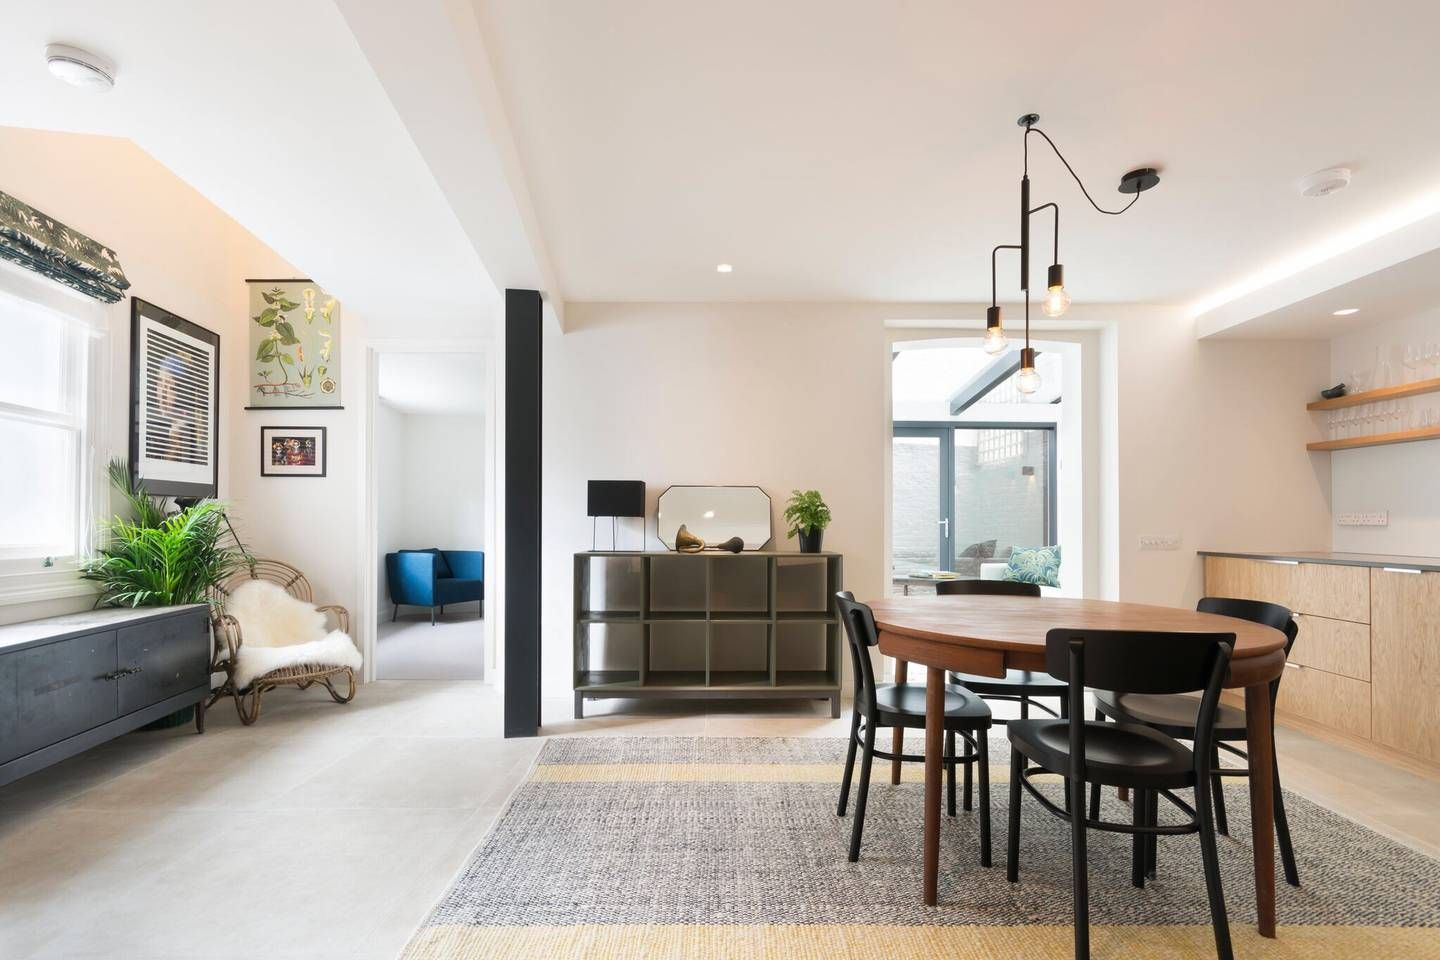 Warwick Avenue Luxury 2 Bed Bath Flat Garden Apartments For Rent In London England United Kingdom